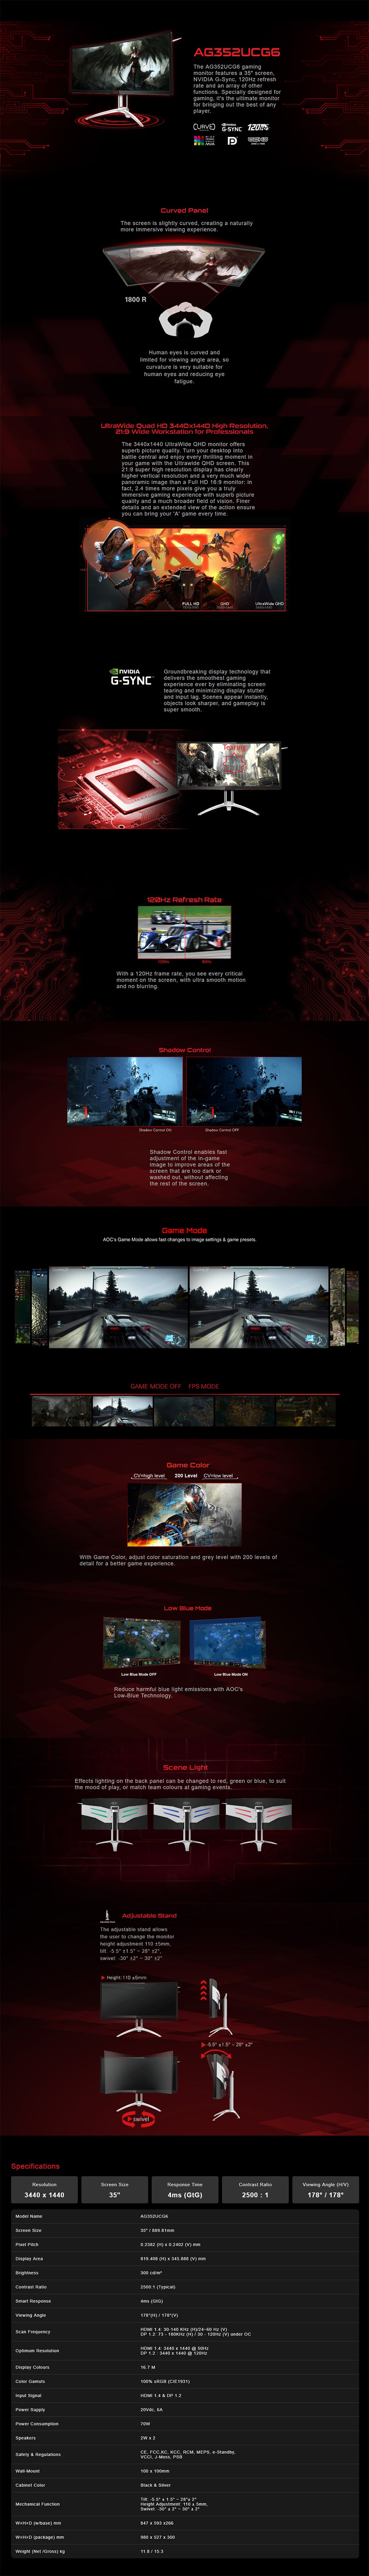 """AOC AGON AG352UCG6 35"""" 120Hz UltraWide QHD Curved G-Sync Gaming Monitor - Desktop Overview 1"""